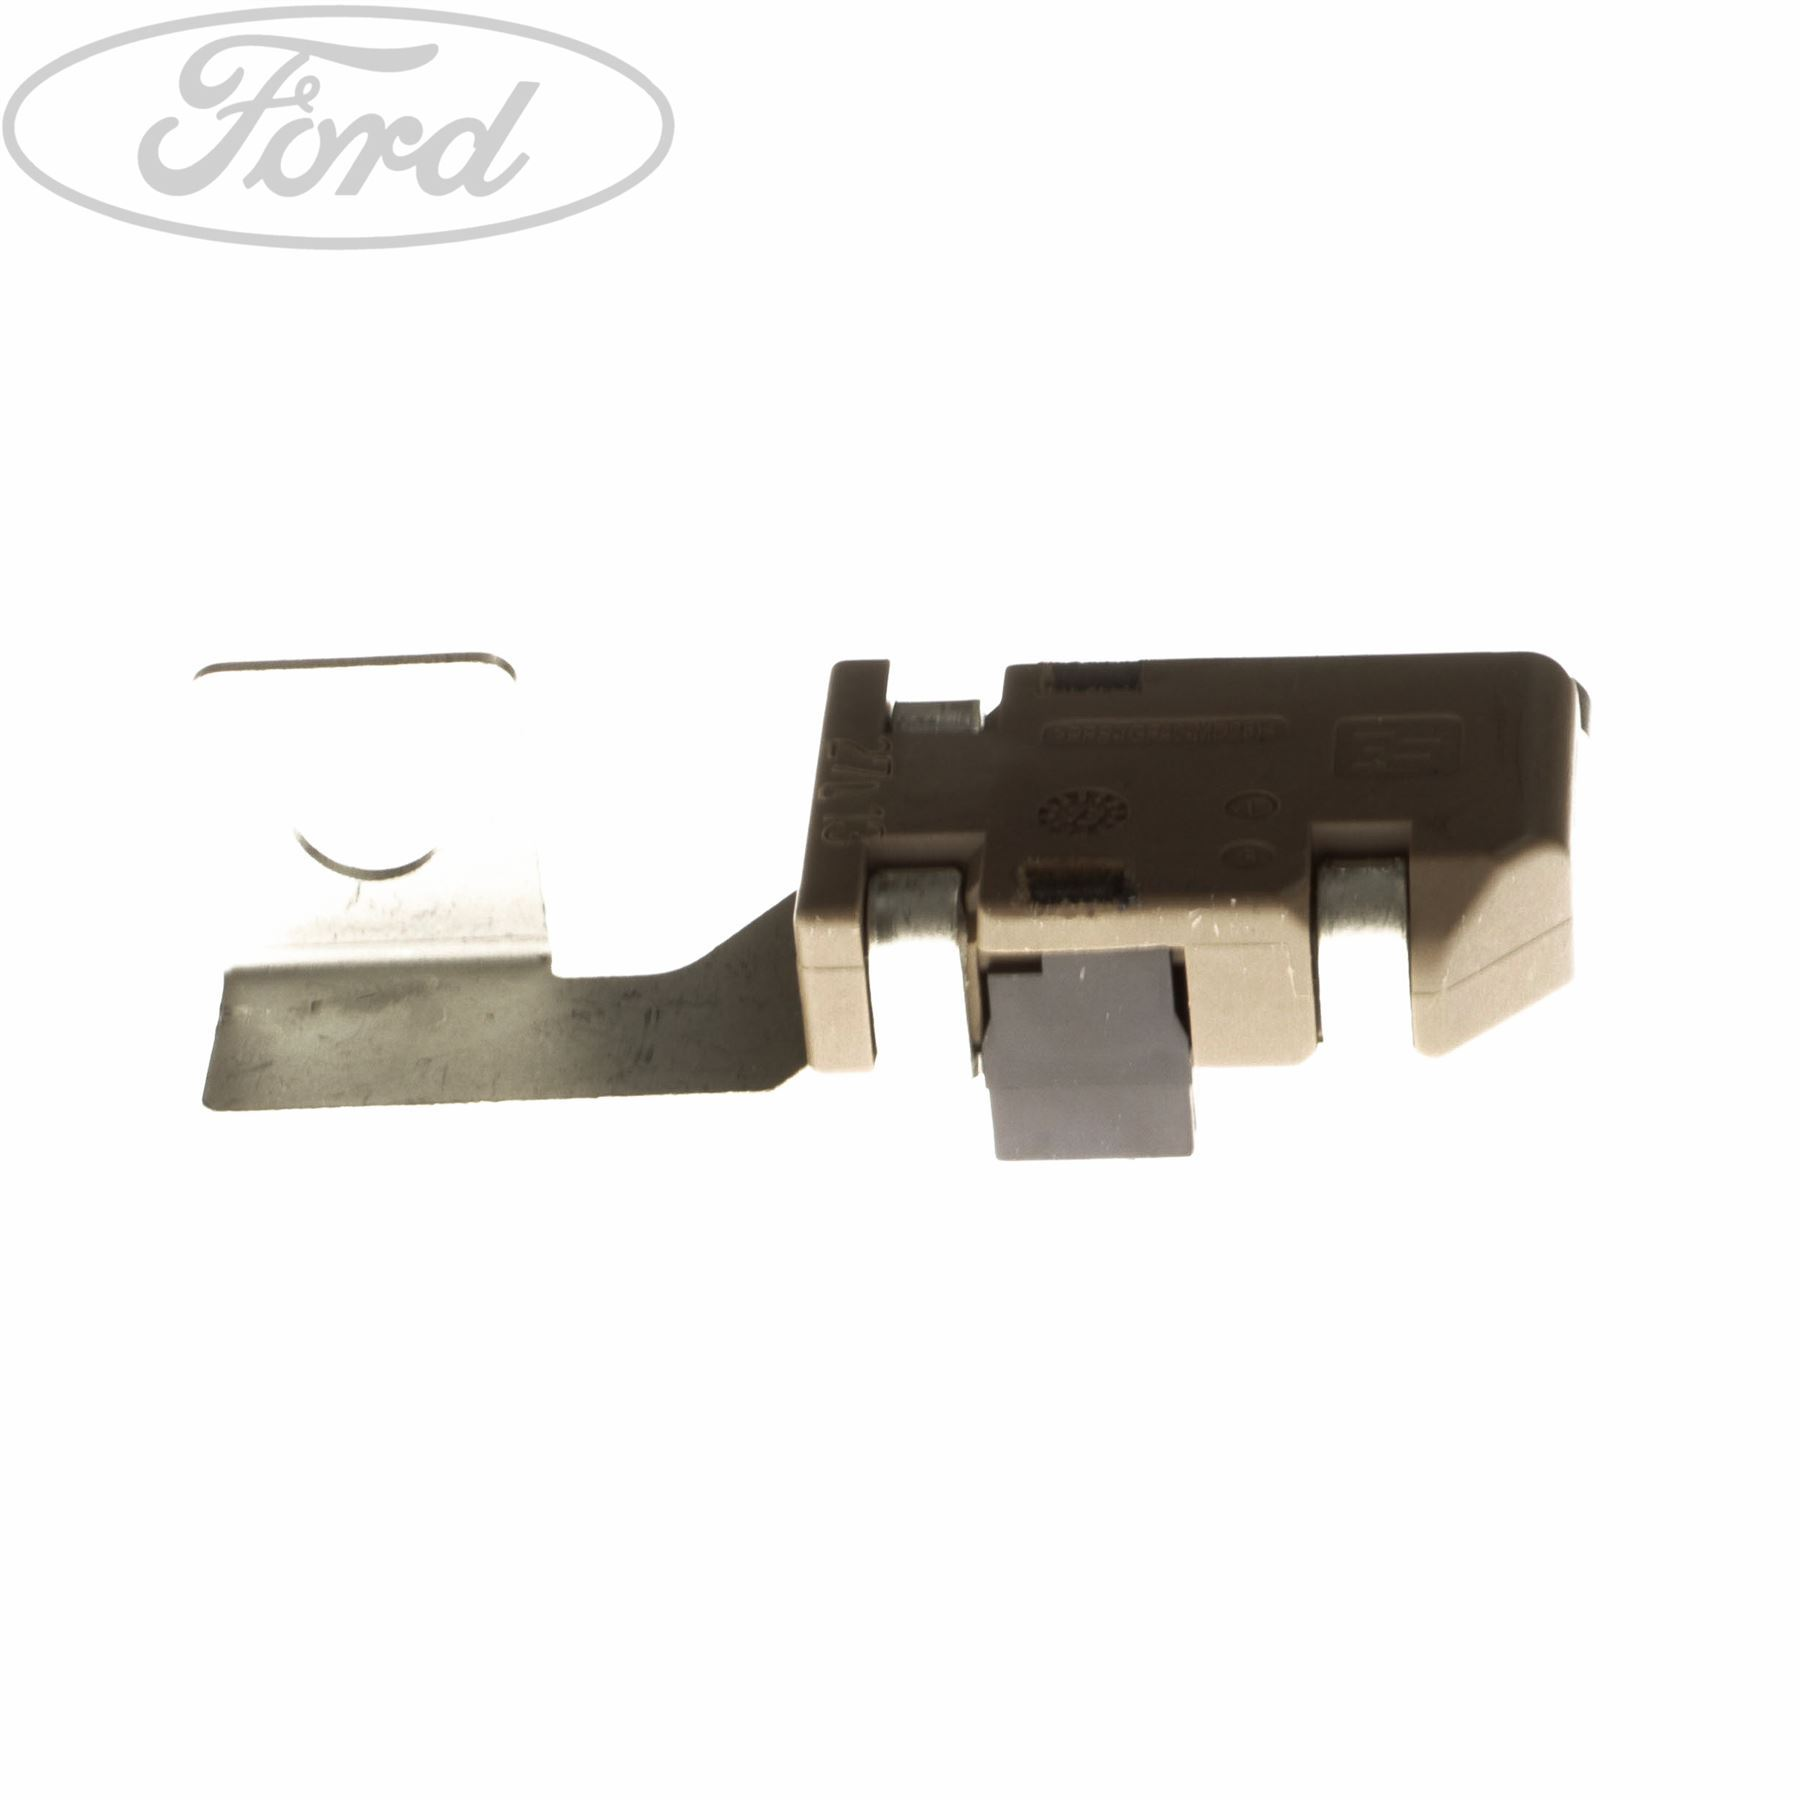 hight resolution of details about genuine ford transit mk 7 circuit breaker 1441281